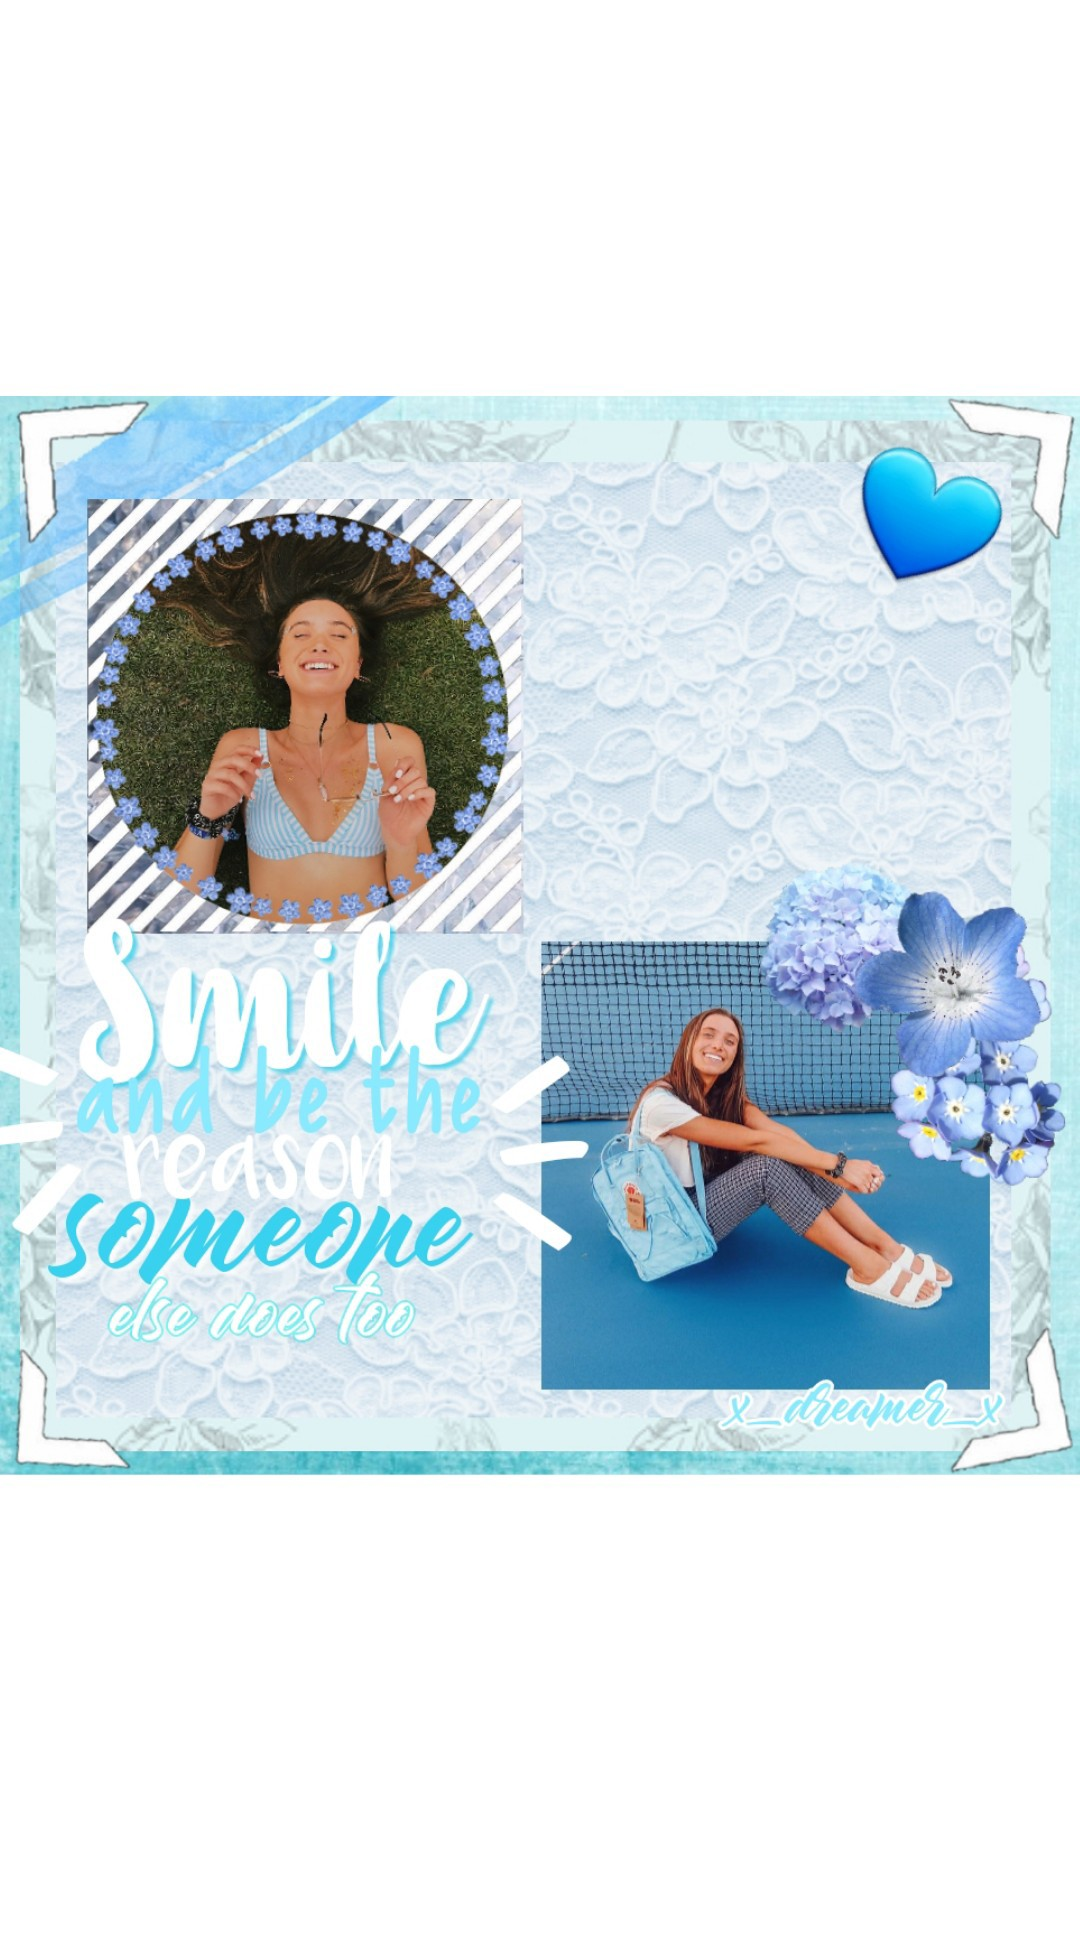 💙tap💙 hey guys !!! smile and be the reason someone else does too 🐳 and thank you so much for 1,000 followers you guys are amazing! 💙💎🐳🍬☁️🌊❄💧